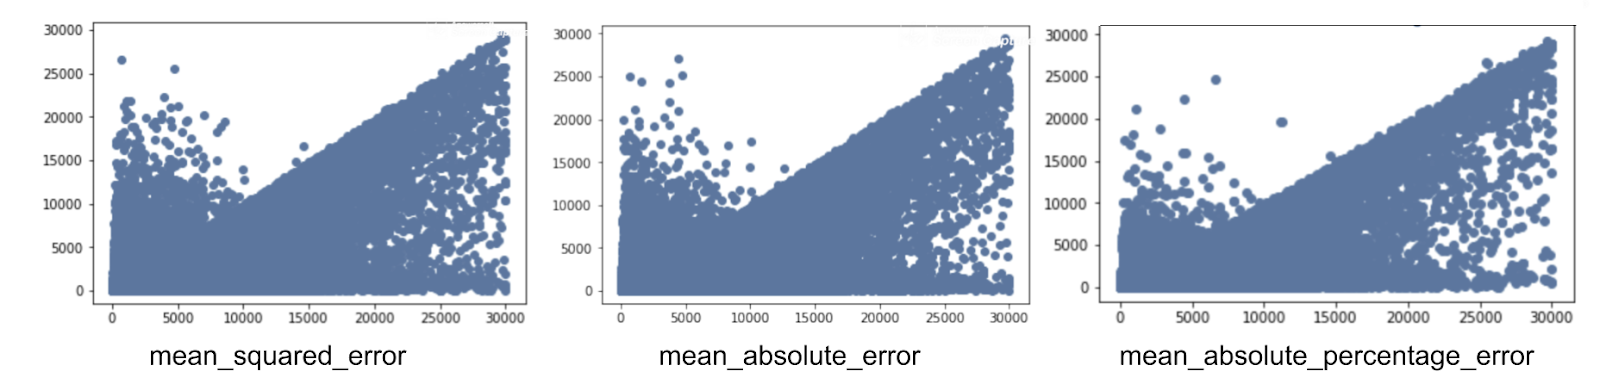 Weight error distribution for the different types of loss function